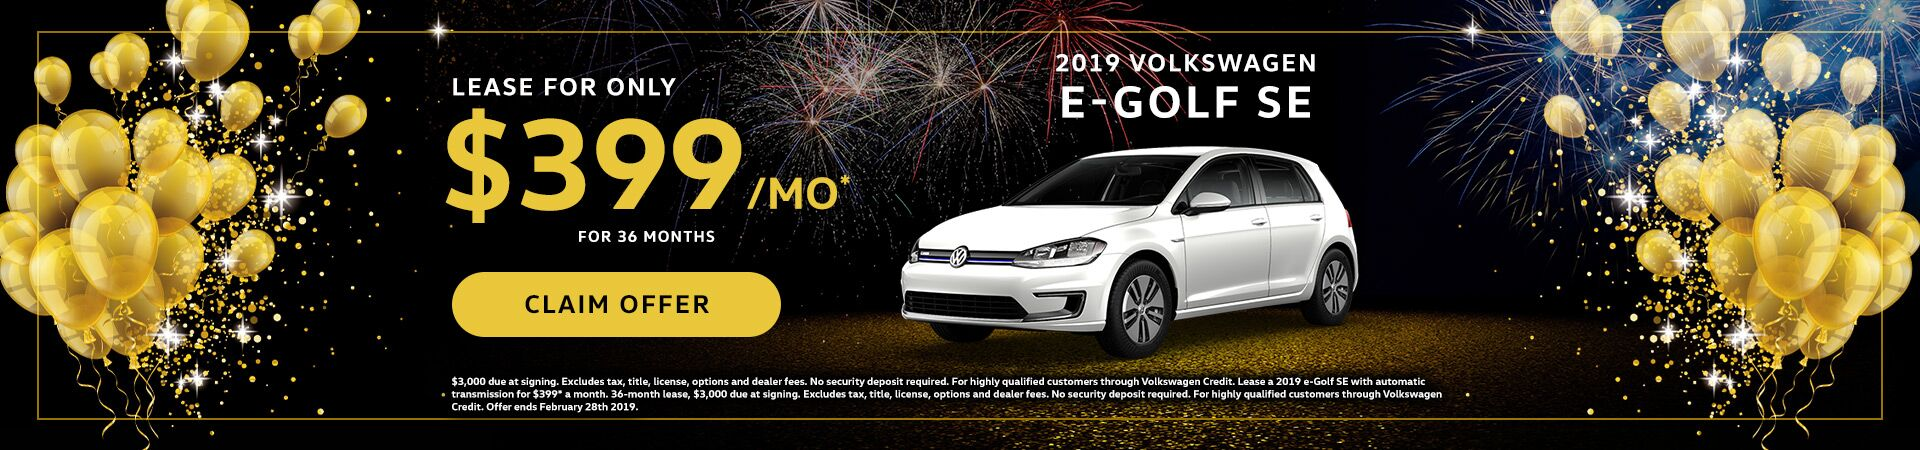 2019 VW eGolf January Special